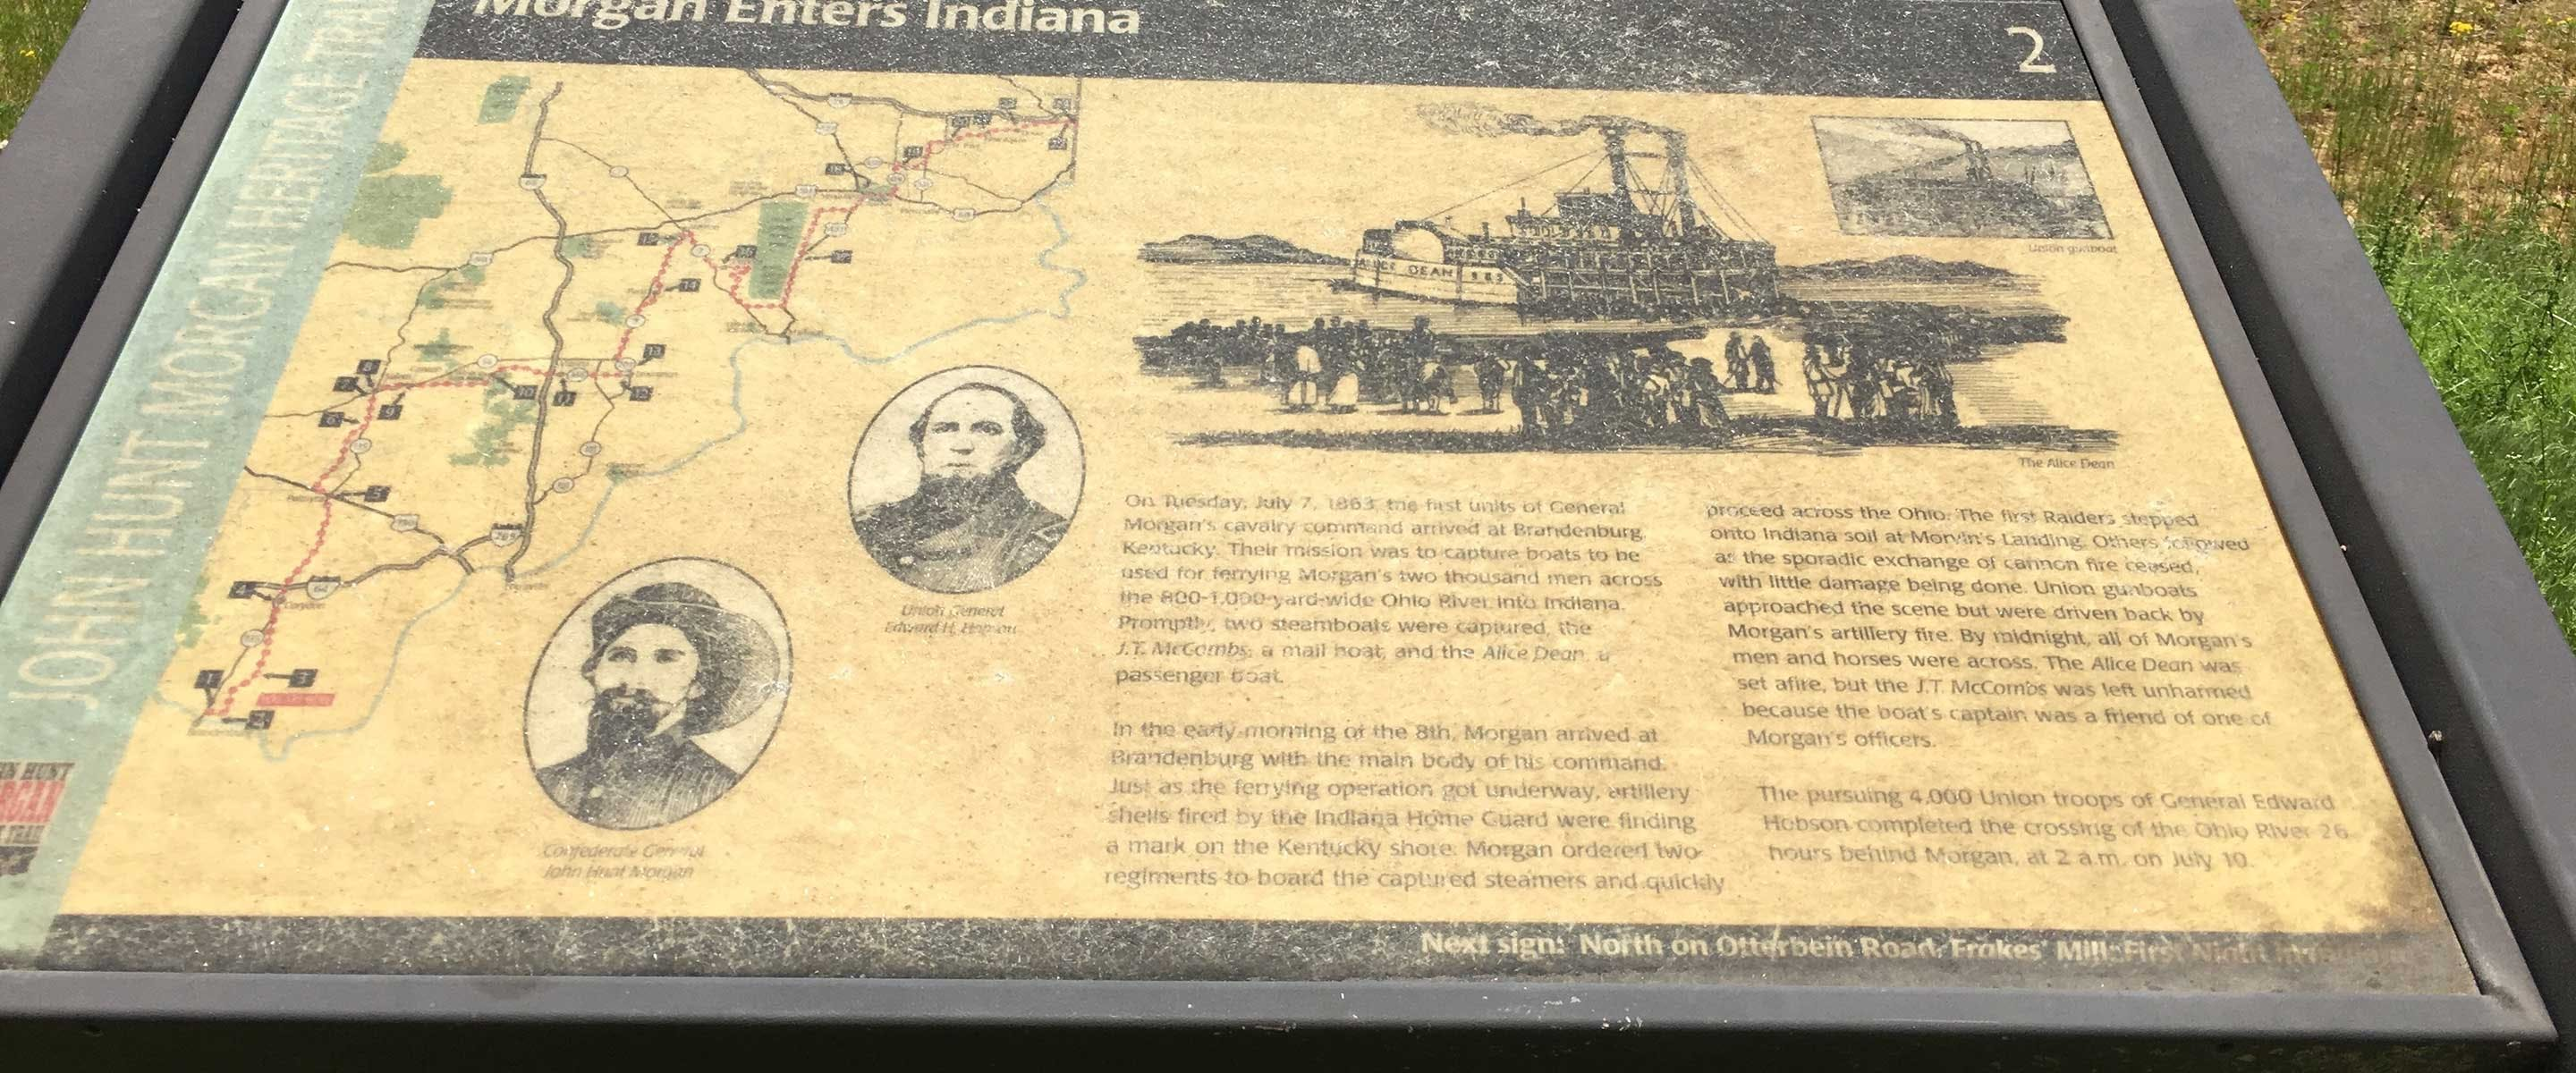 upclose view of the map in the park detailing its history